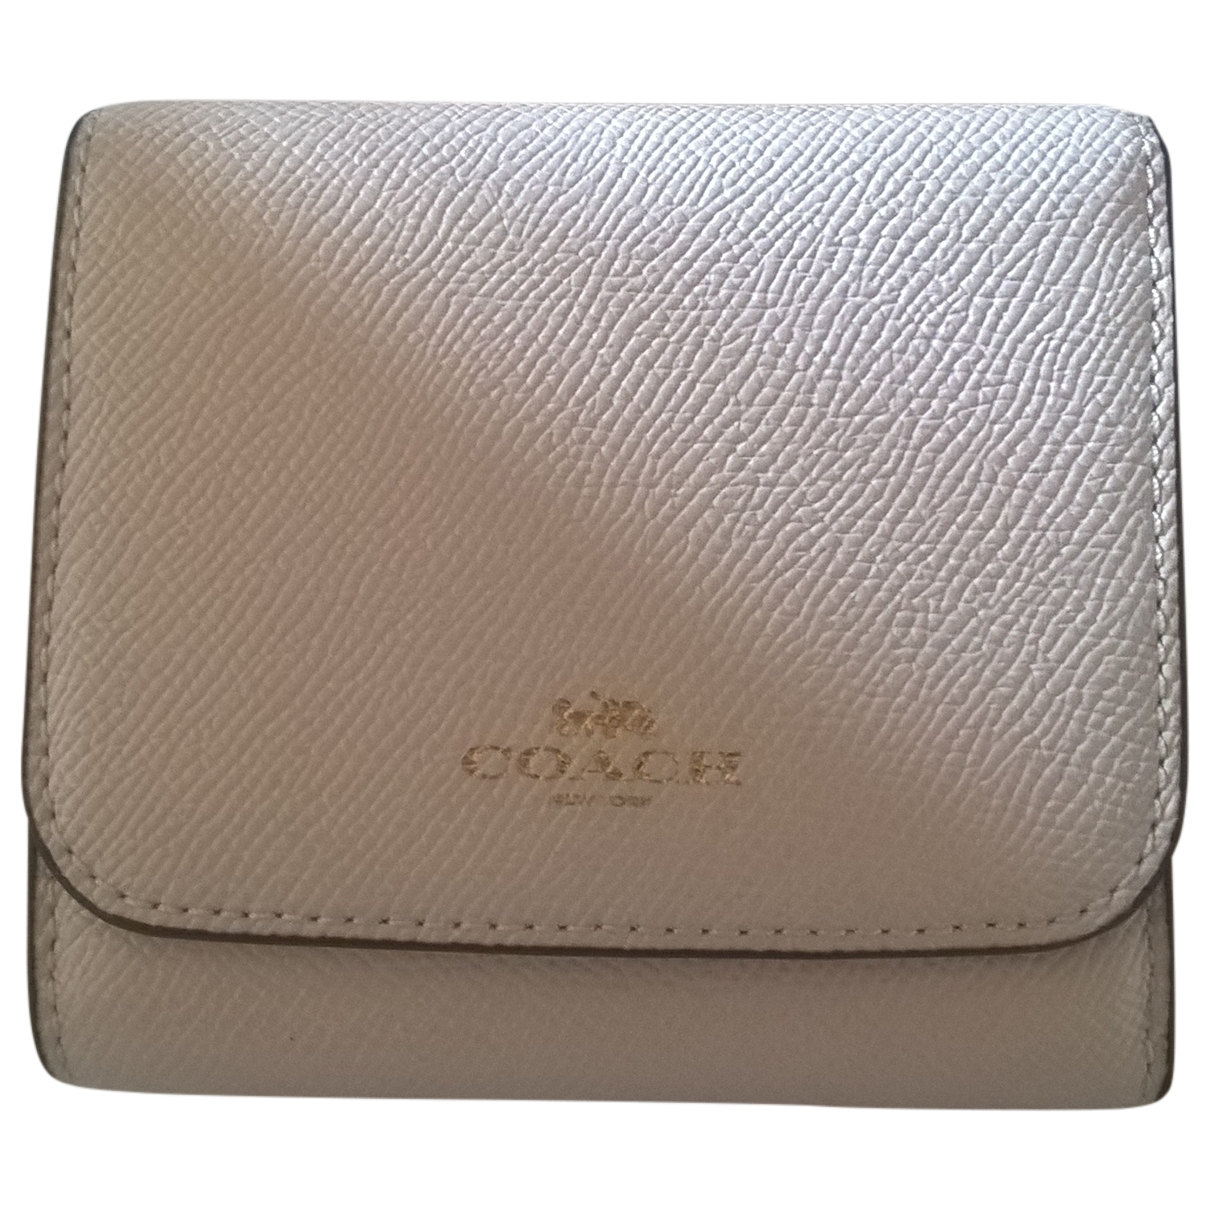 Coach \N Beige Leather wallet for Women \N